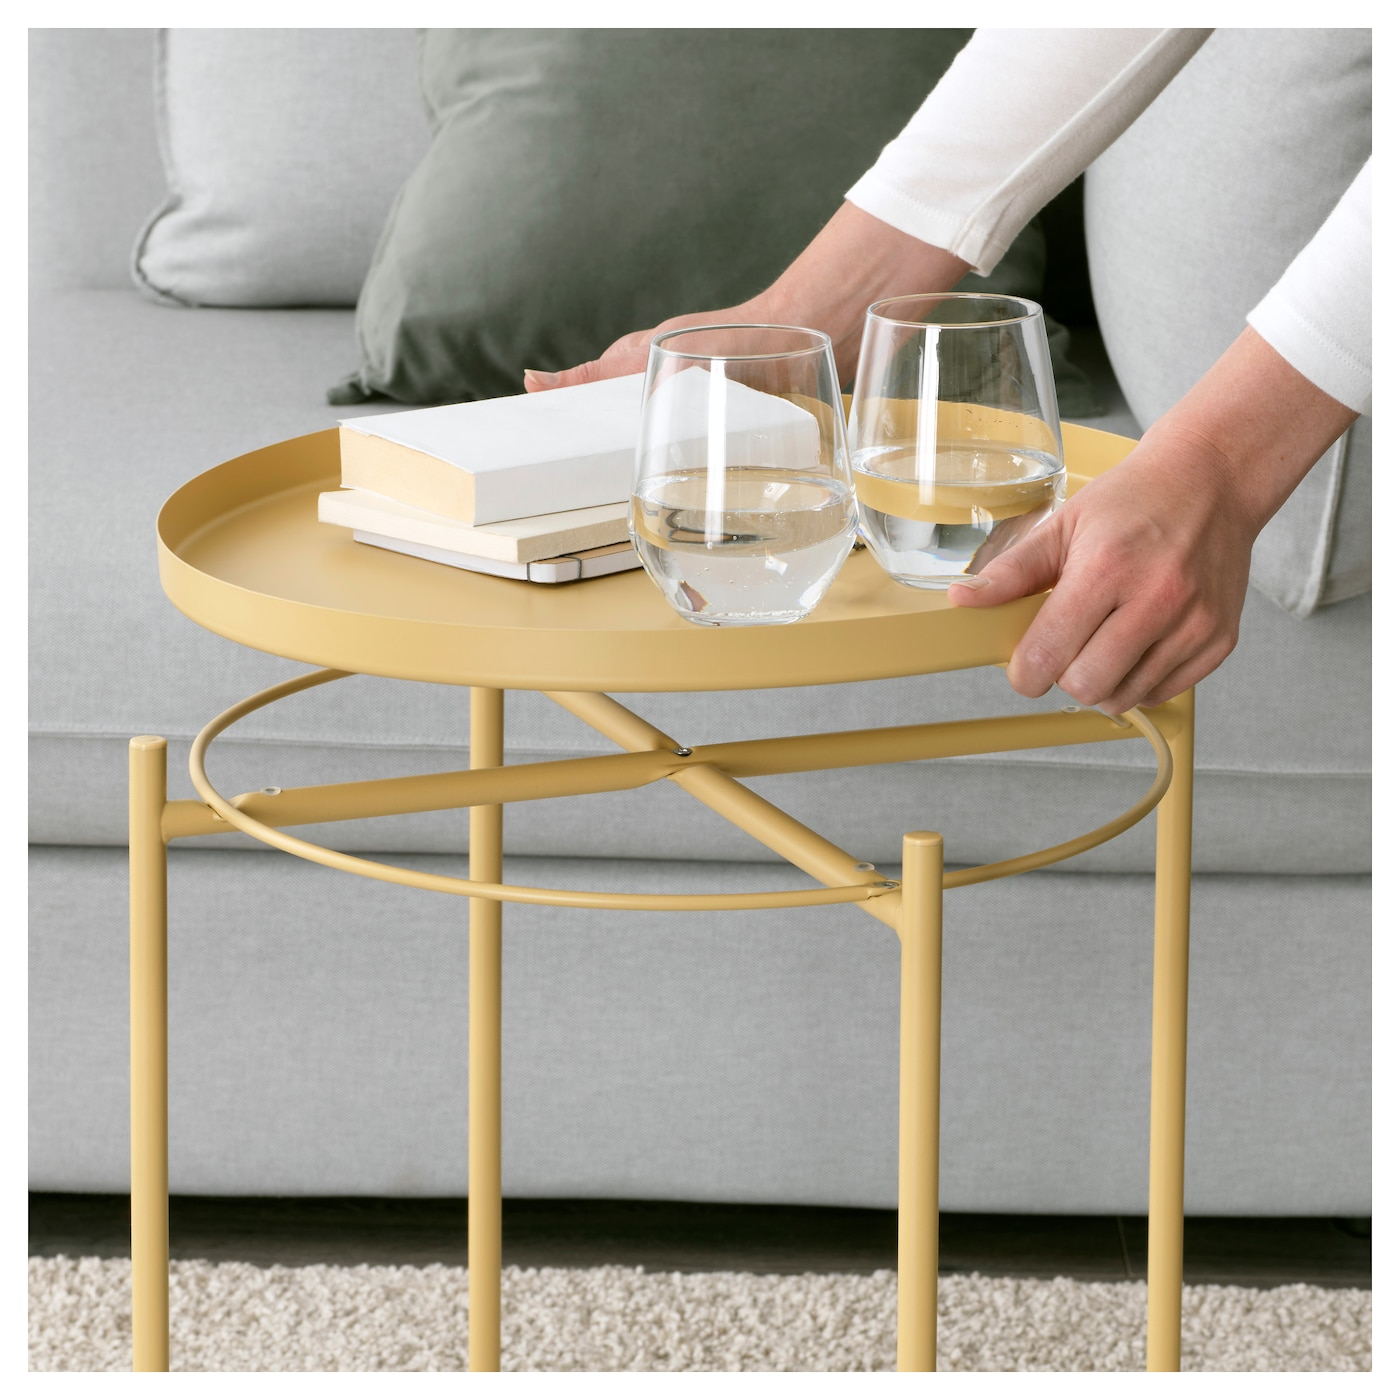 Anthropologie Coffee Table Tray: GLADOM Tray Table Light Yellow 45 X 53 Cm